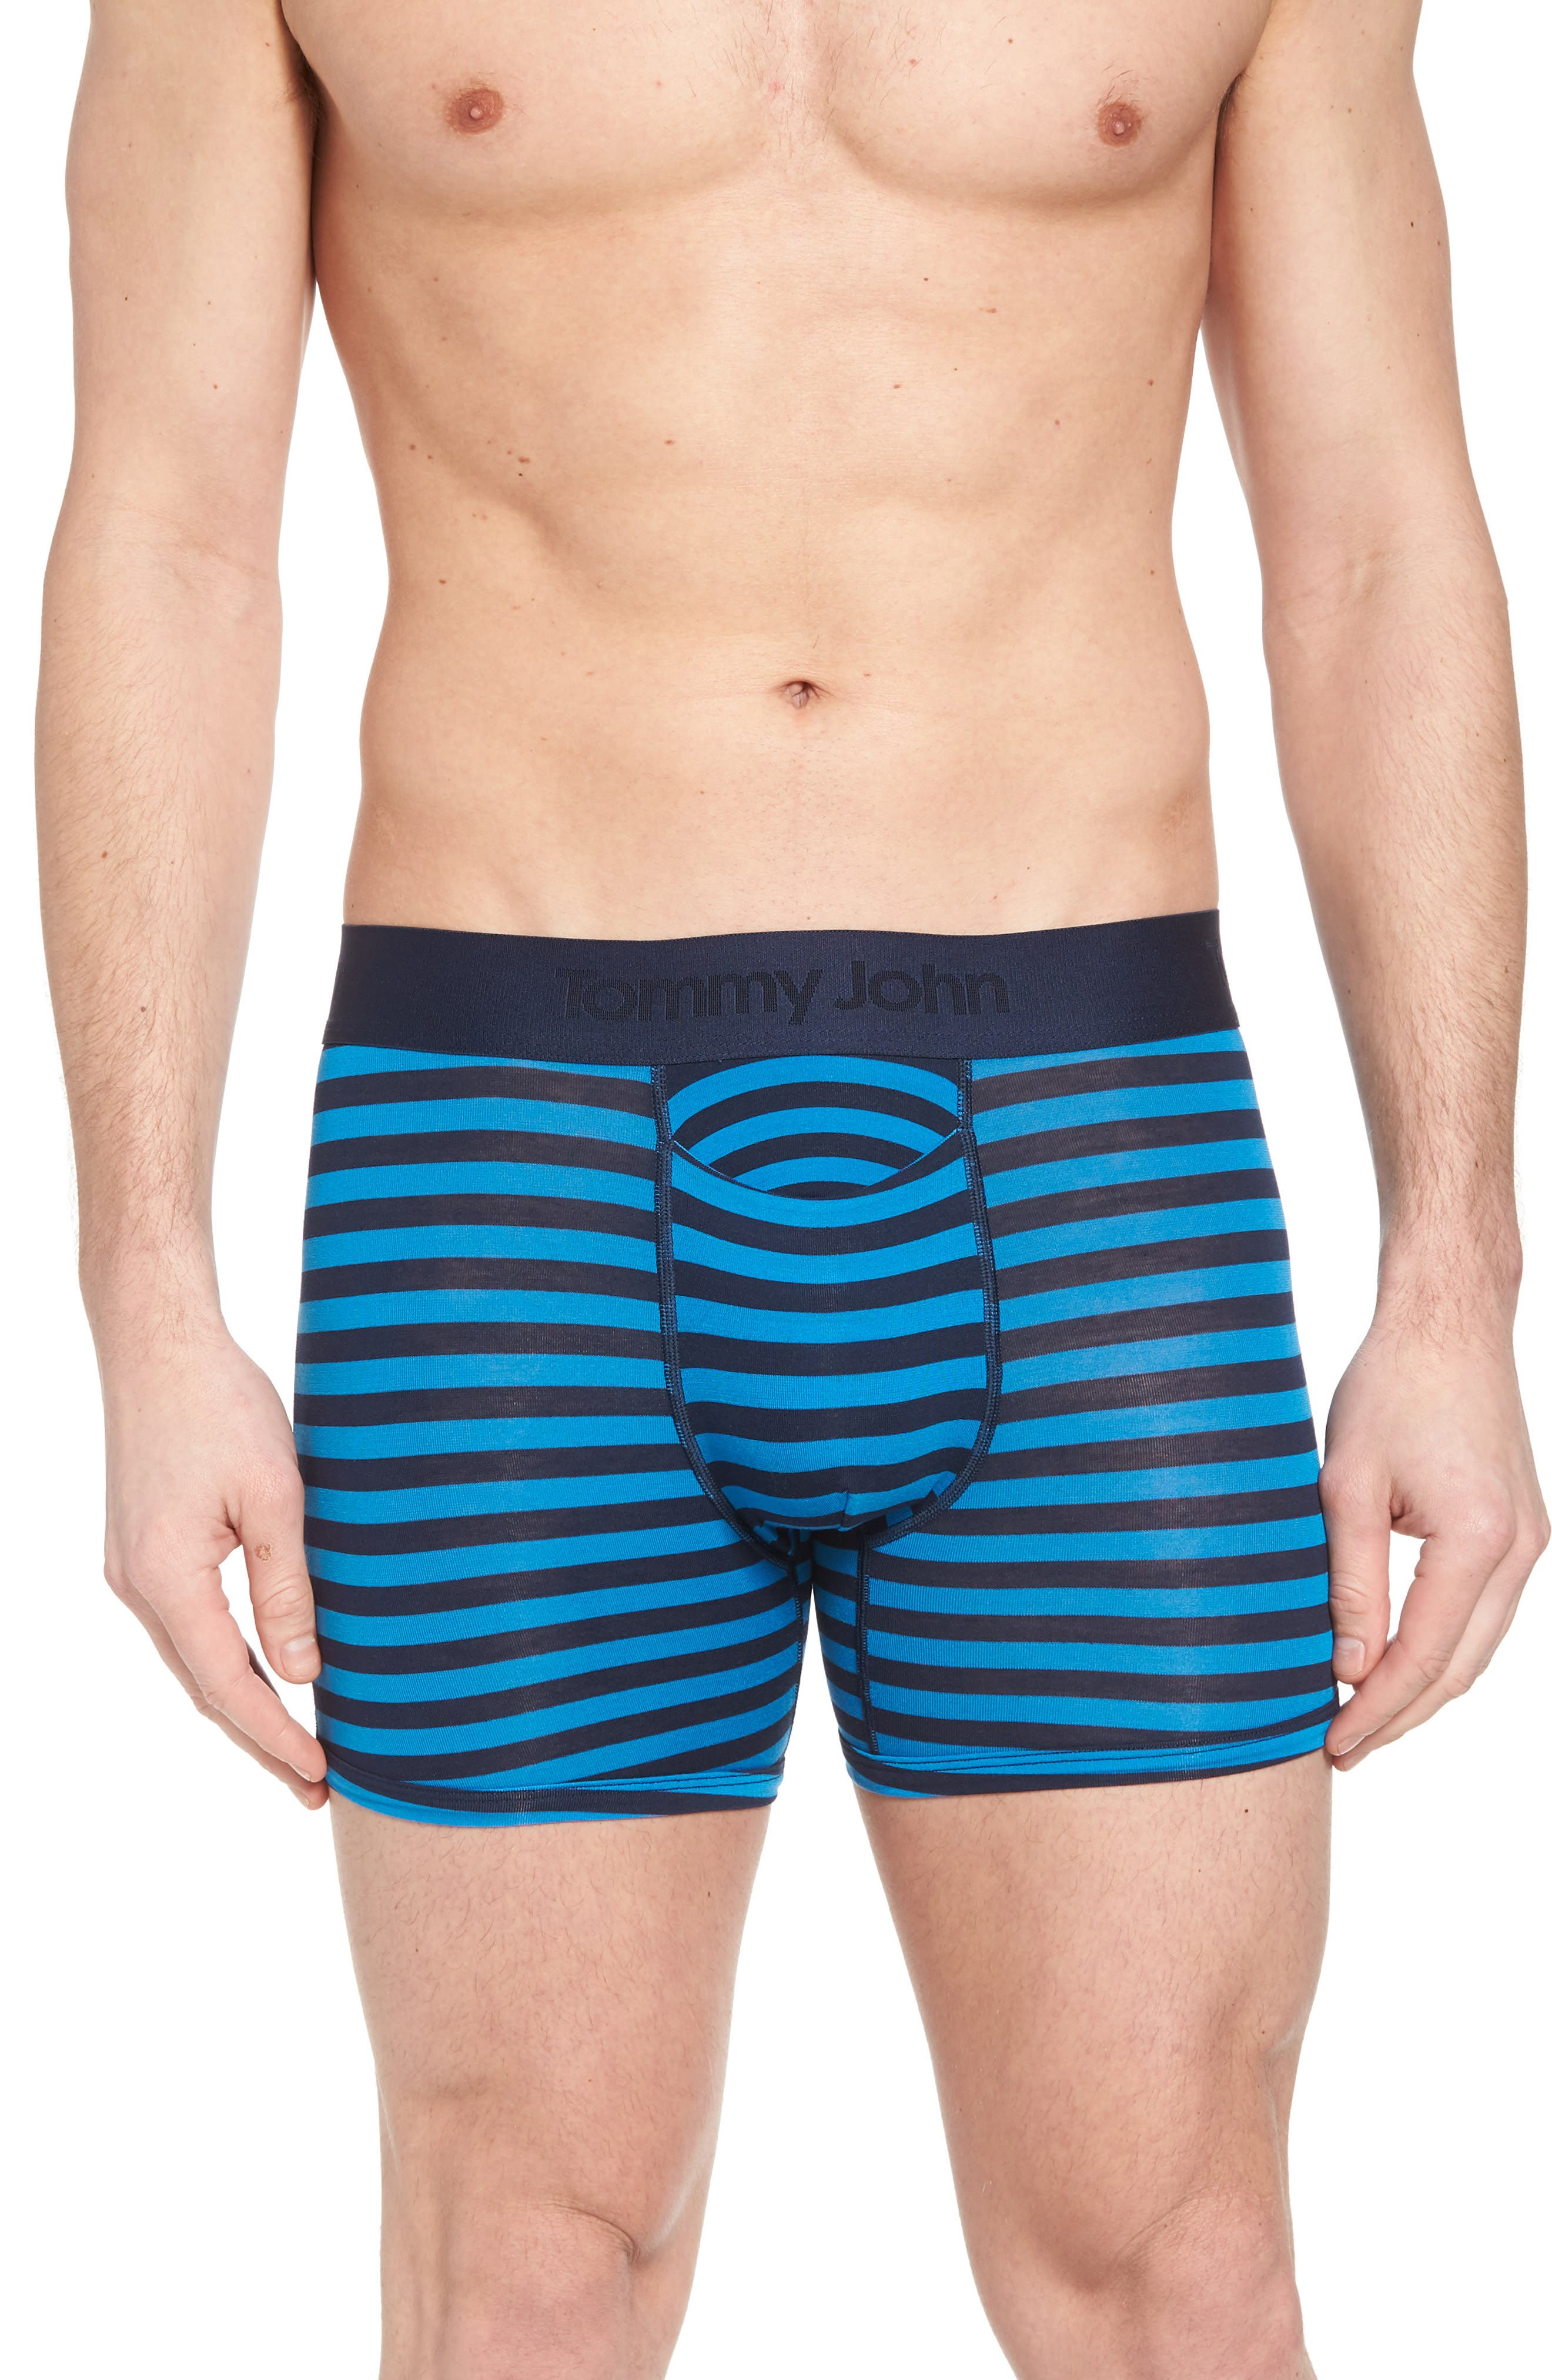 Second Skin Trunks,                         Main,                         color, Dress Blues/ New Blue